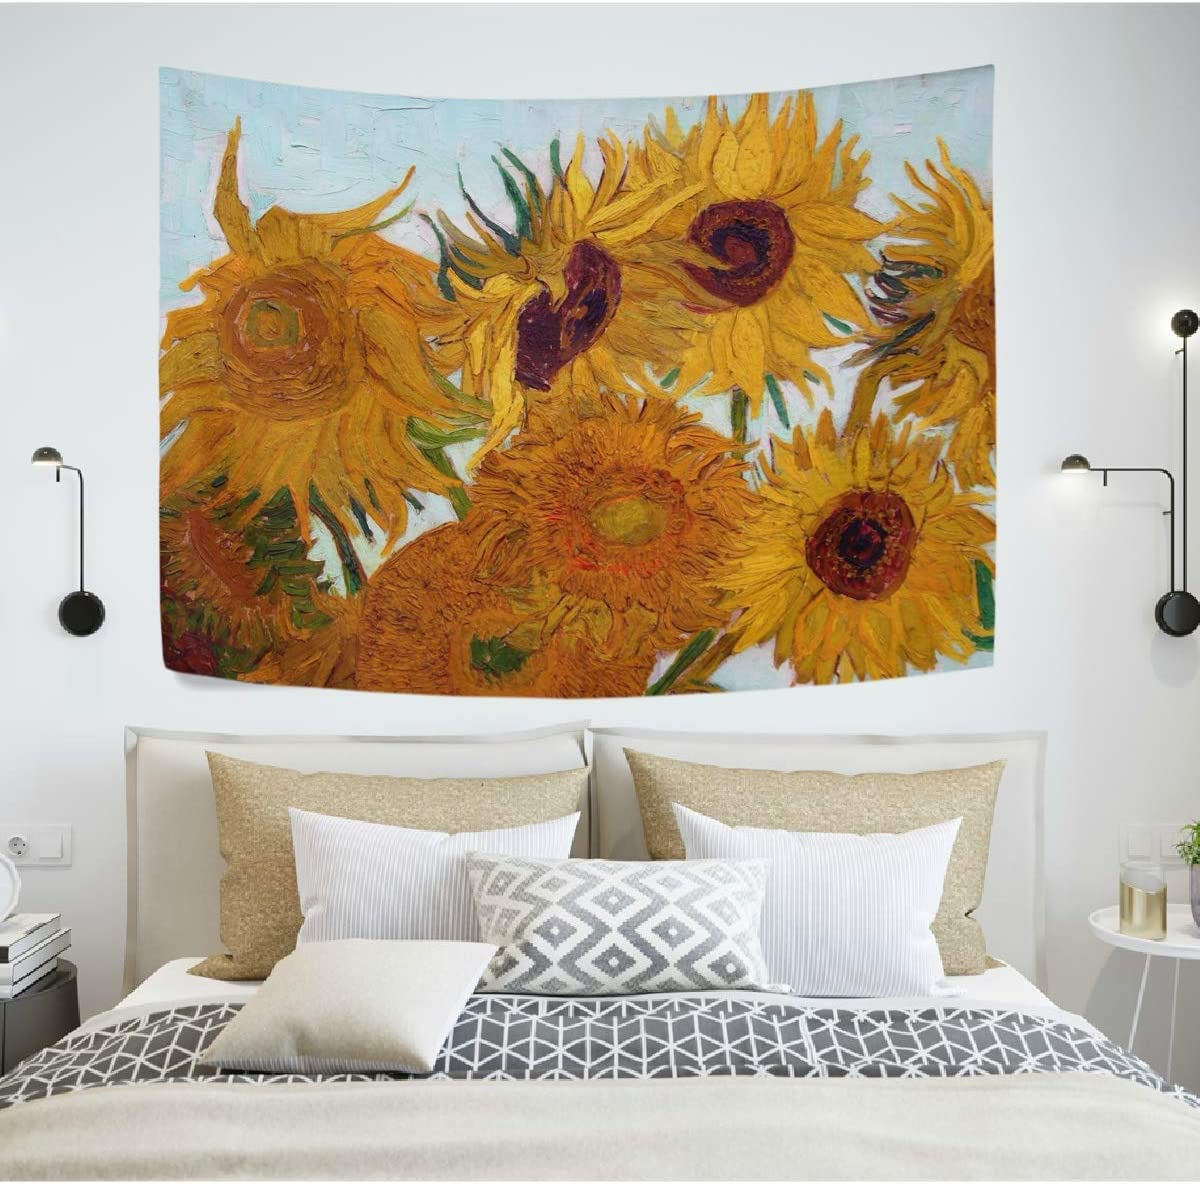 WIHVE Van Gogh Tapestry Sunflowers Wall Tapestry Floral Flowers Tapestry Wall Hanging Art Home Decor for Bedroom Living Room Apartment Dorm 60 x 51 Inches